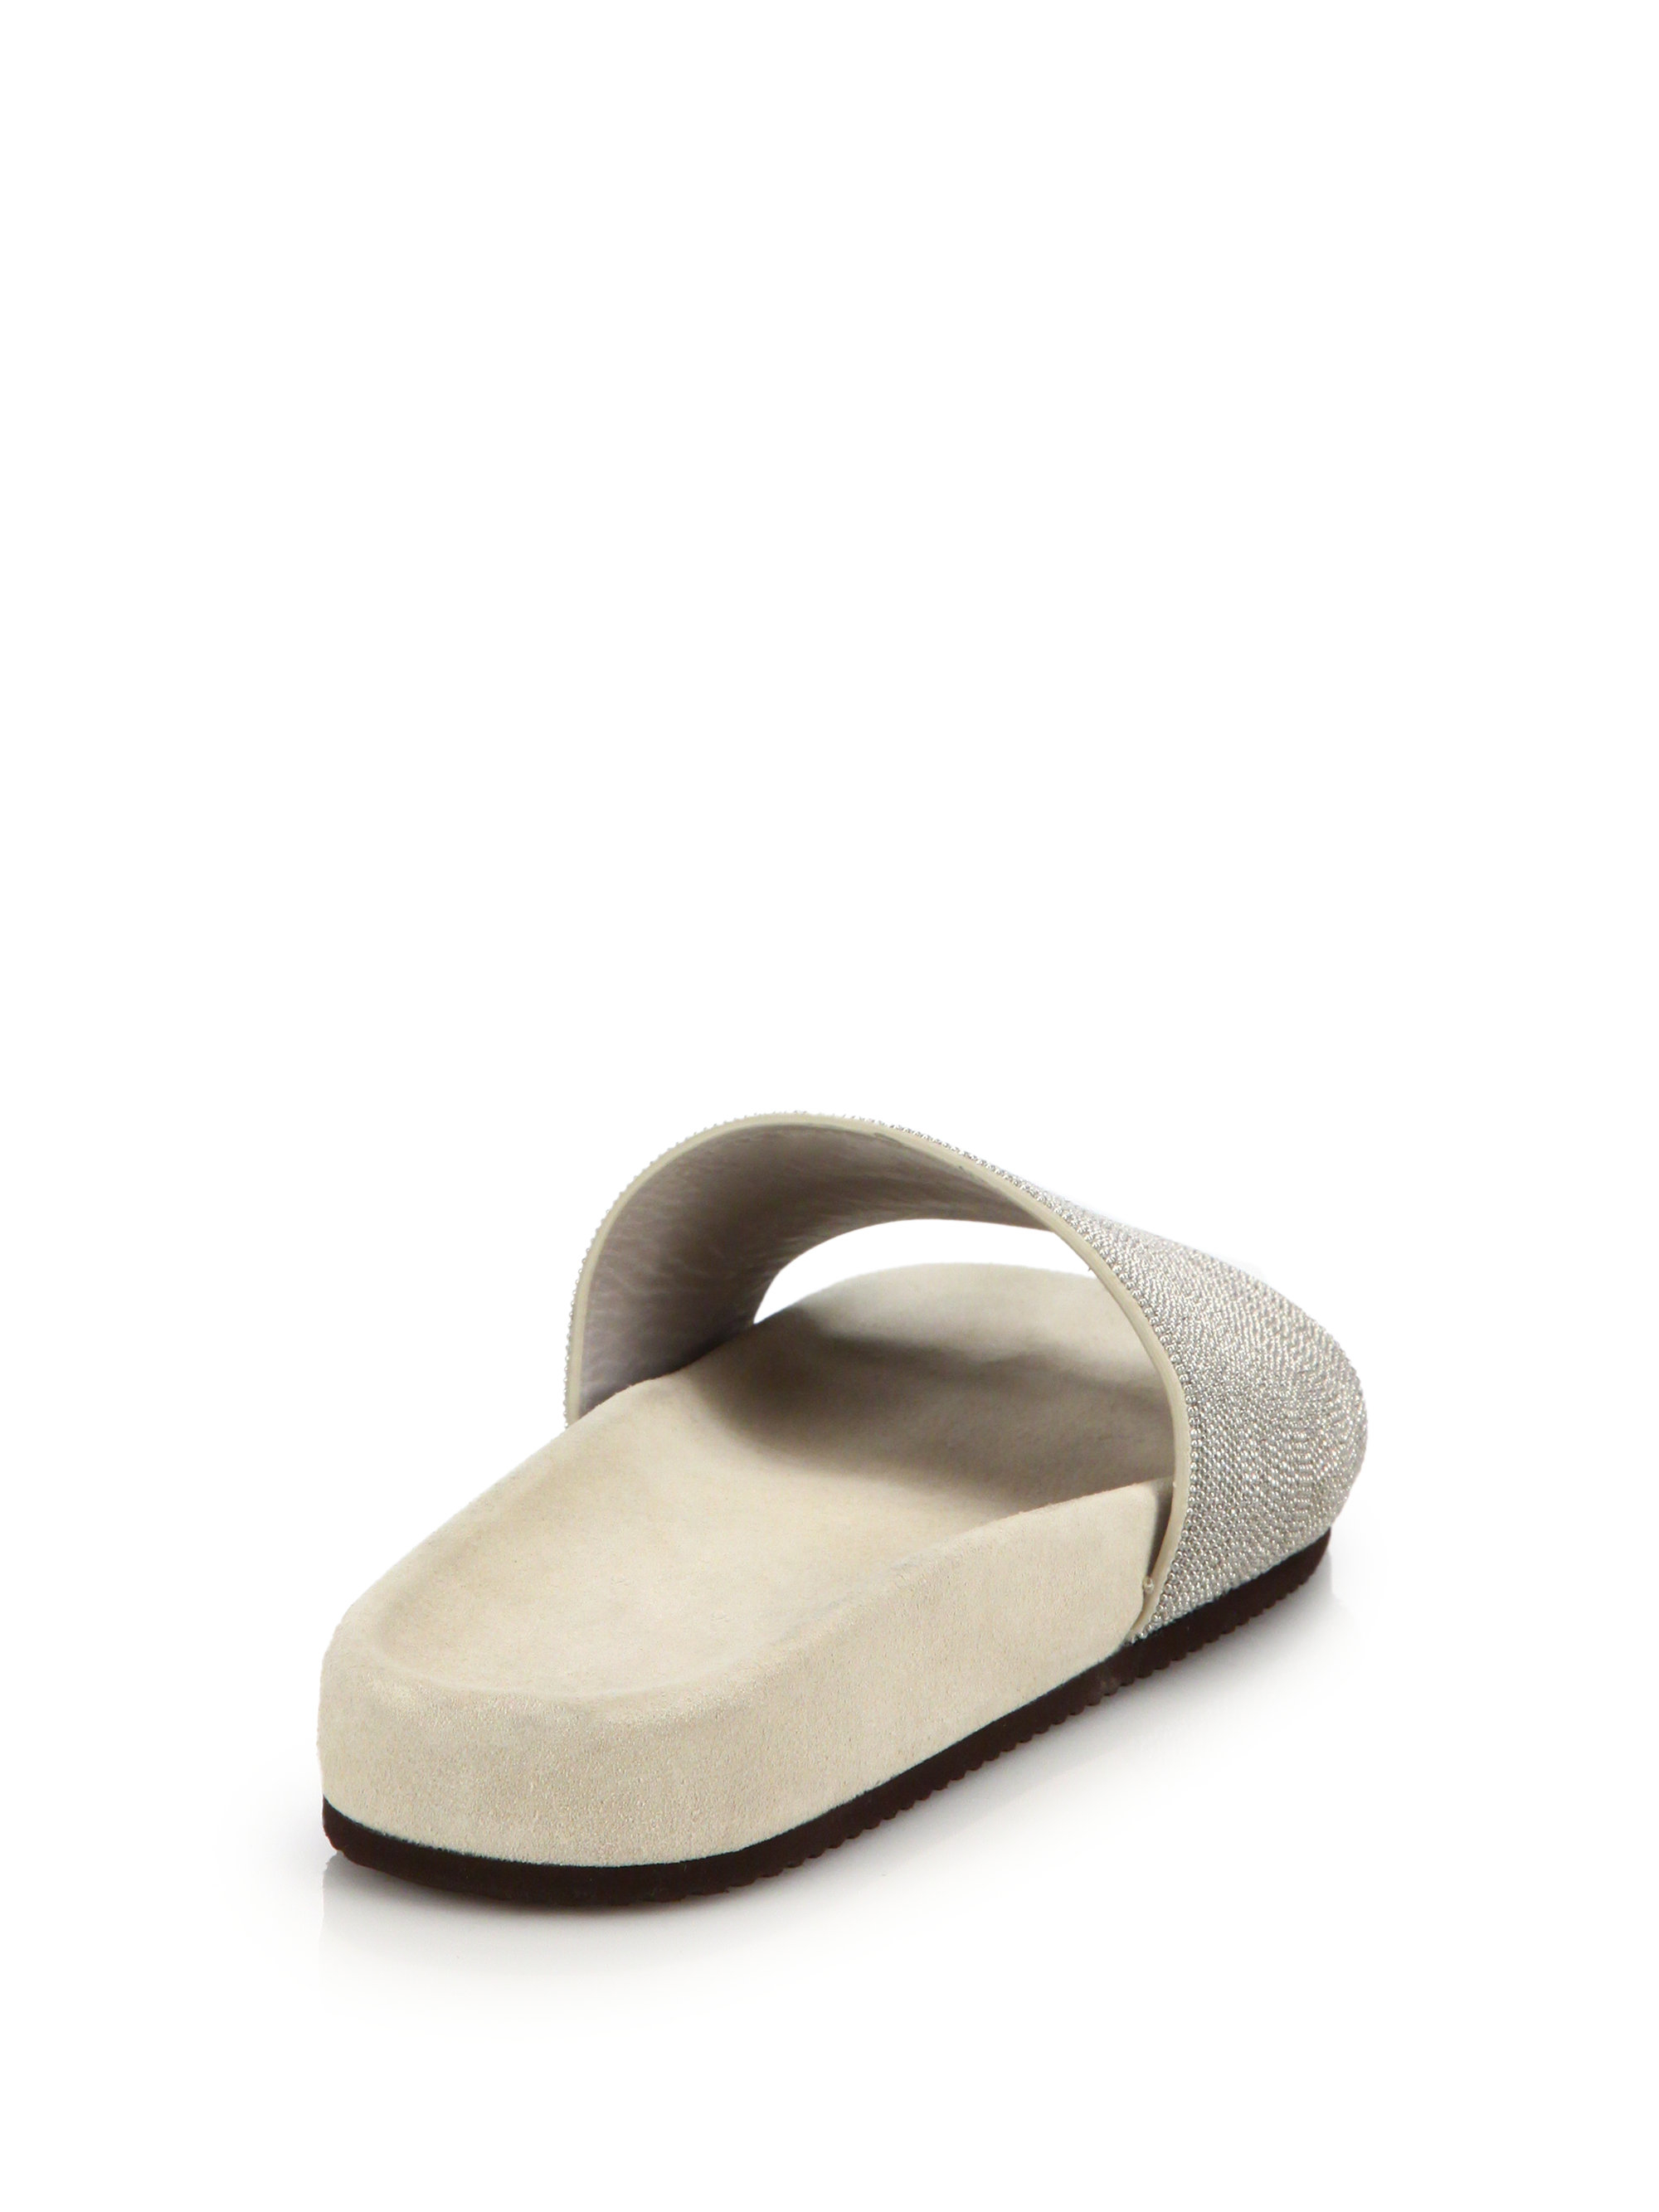 with paypal cheap online Brunello Cucinelli Leather Monili Sandals clearance lowest price buy cheap genuine original for sale 04iXB